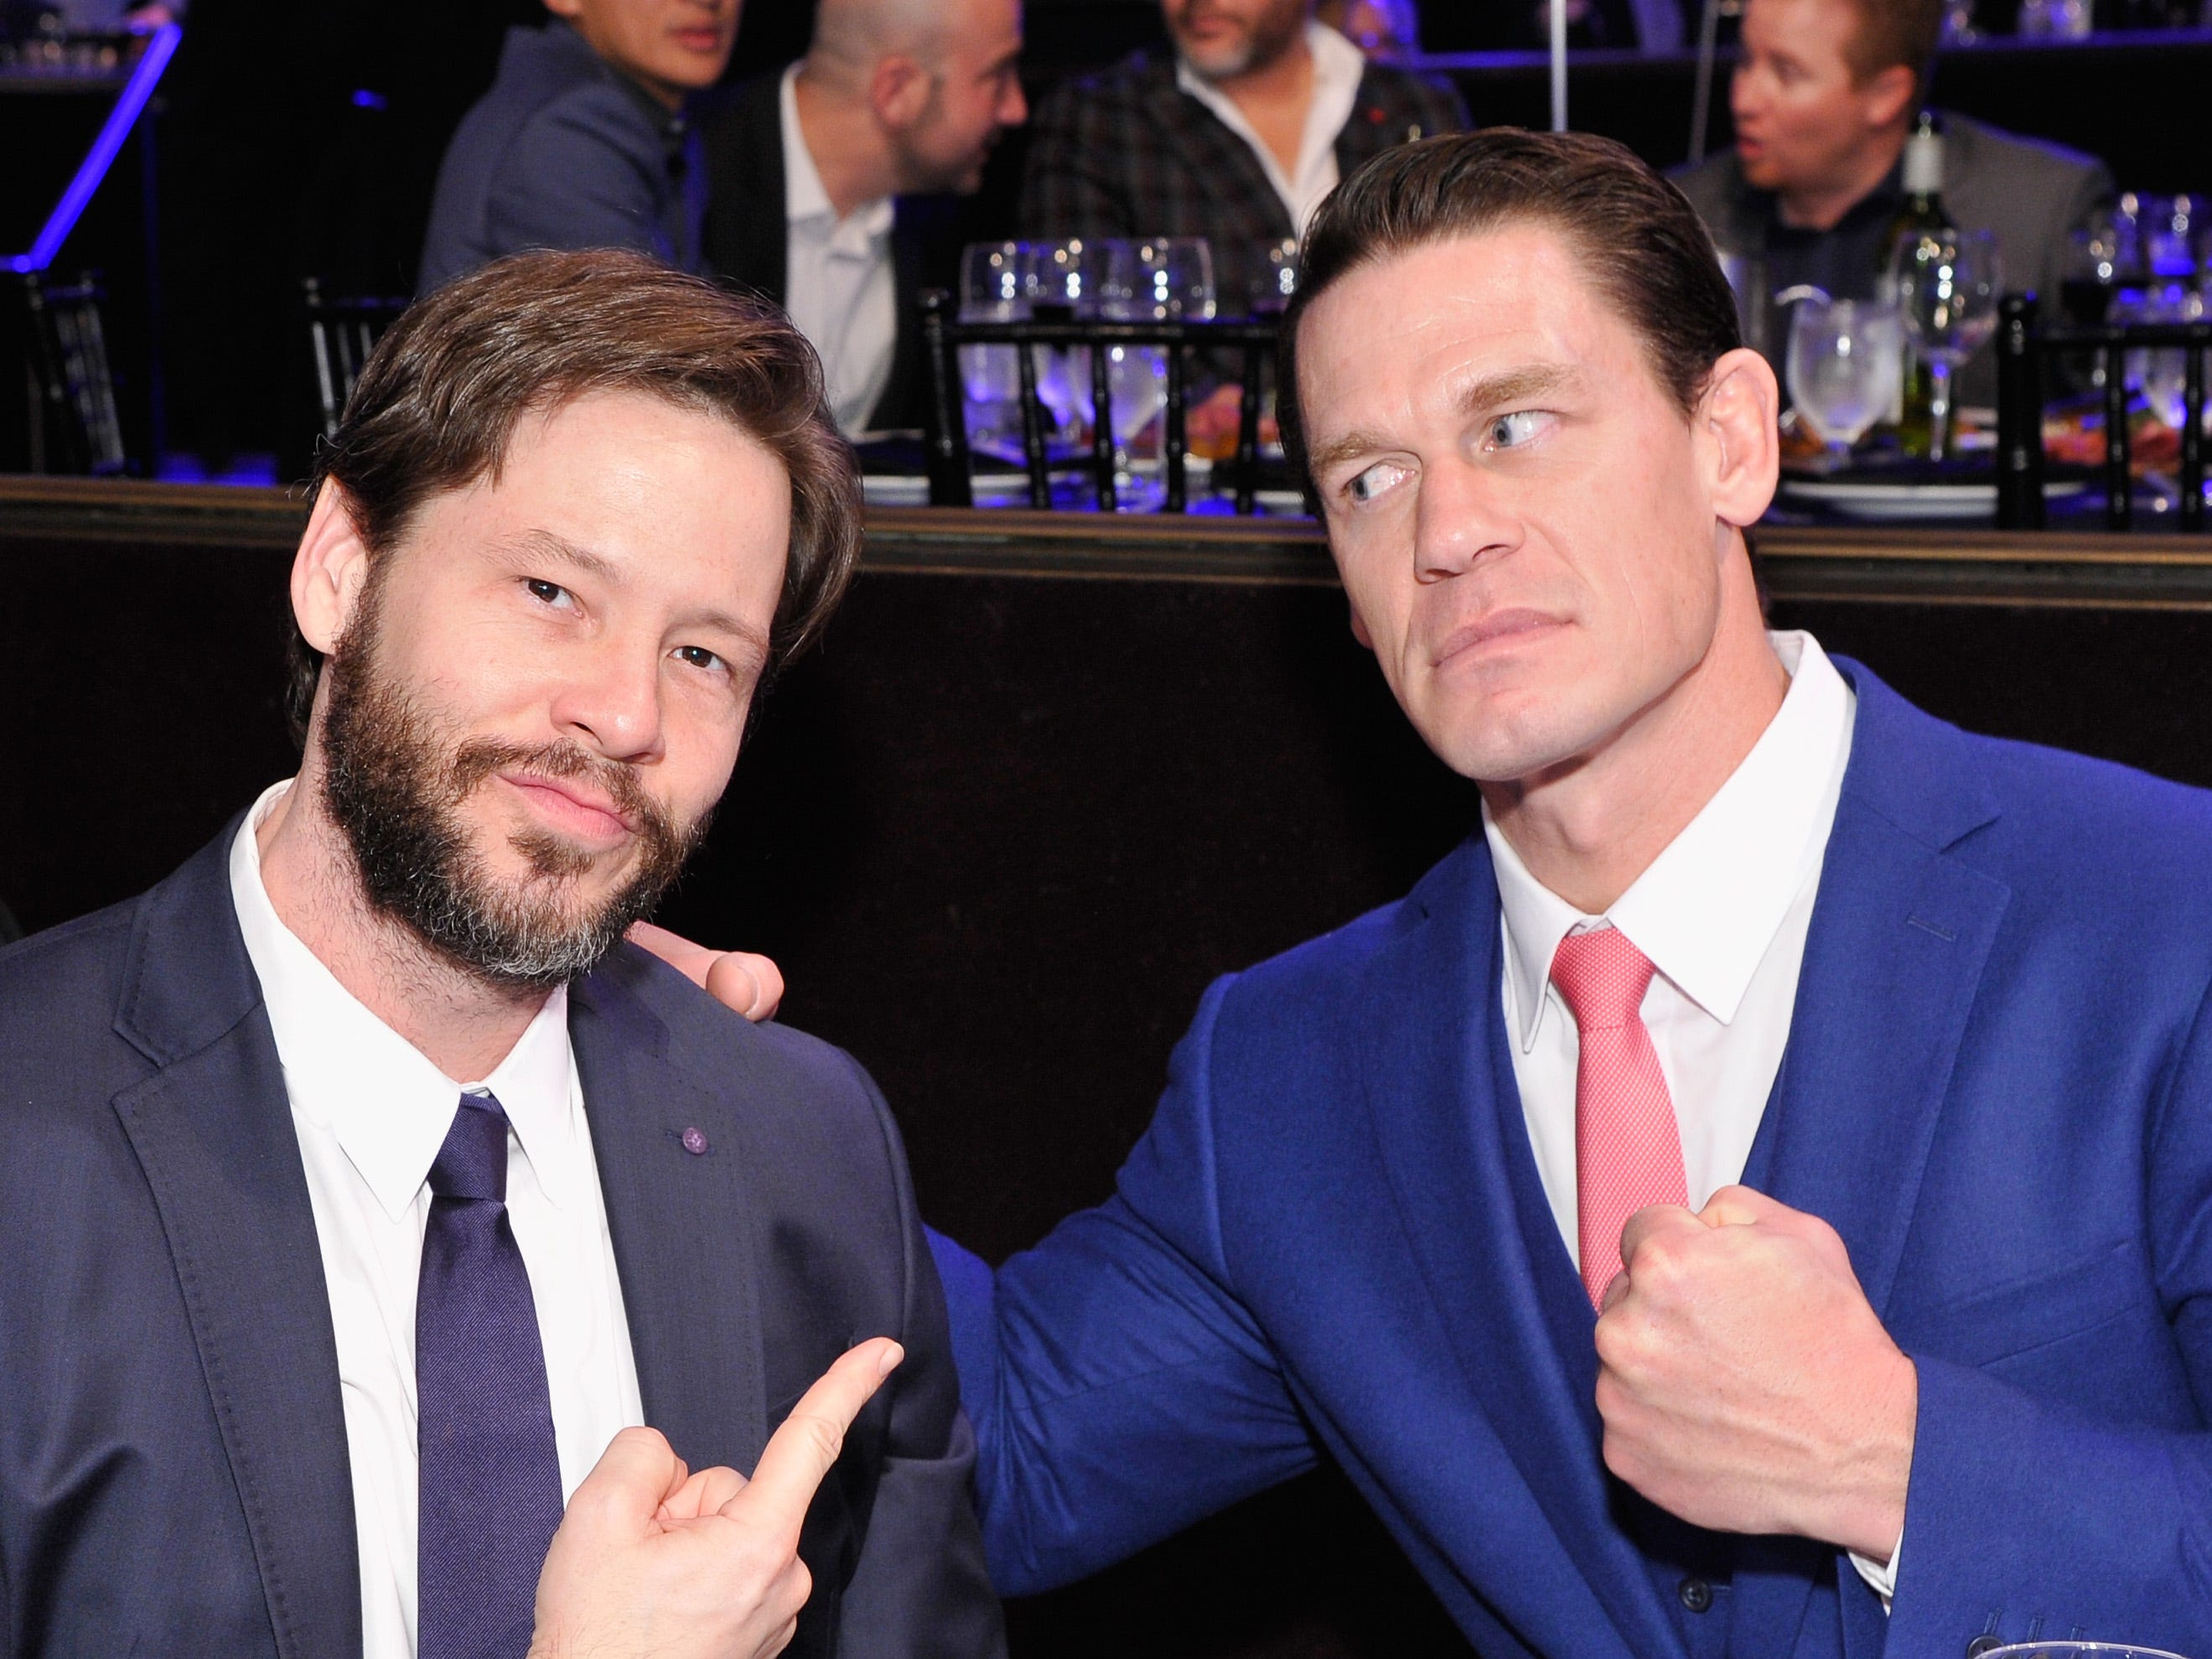 December 11: Ike Barinholtz and John Cena goof off at the Sports Illustrated Sportsperson of the Year Awards.